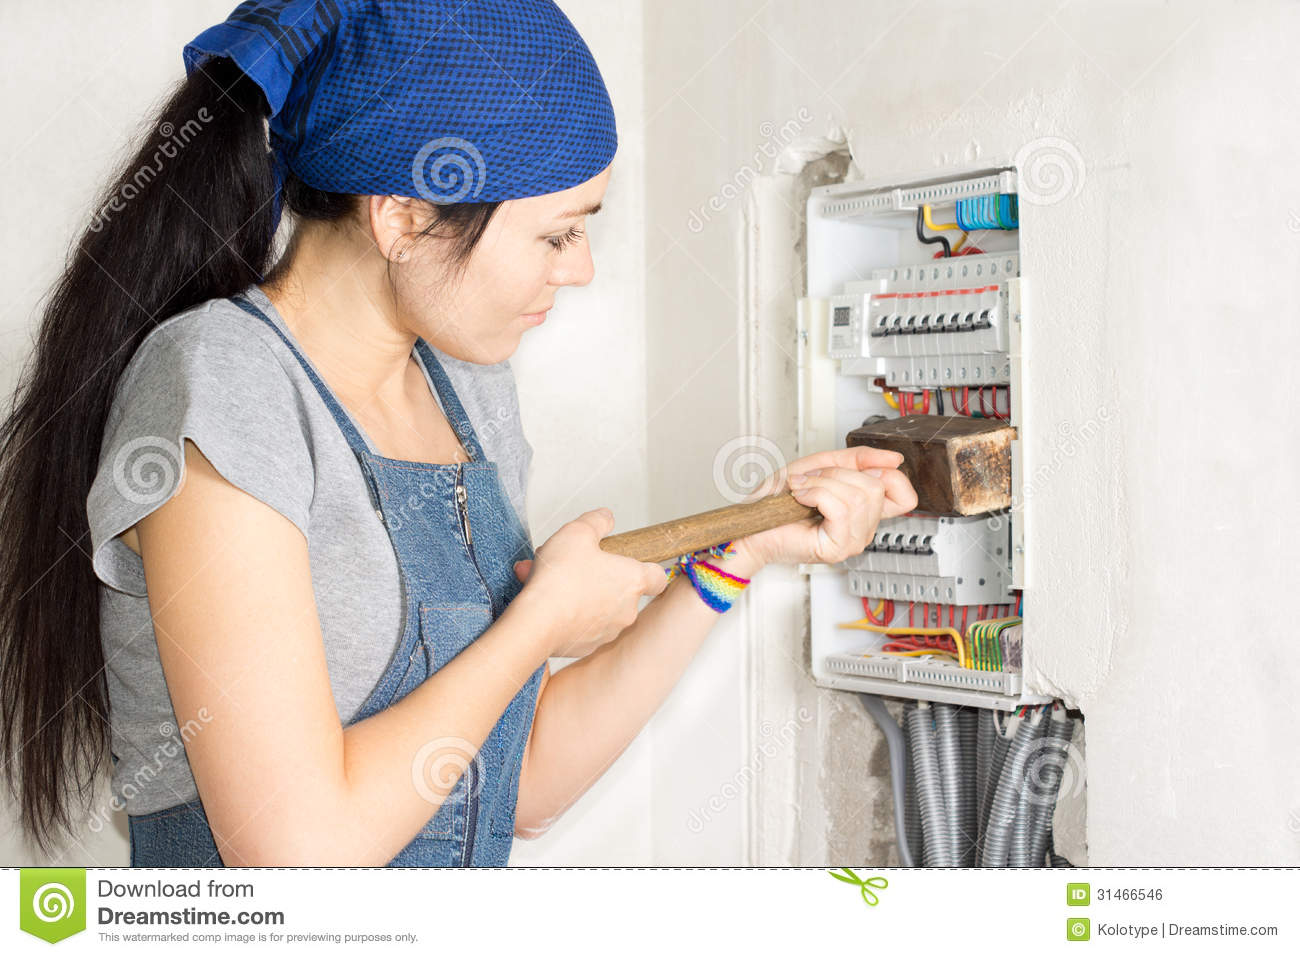 Housewife armed with a wooden mallet attacking an open electrical fuse box  in frustration as she tries to solve her problems